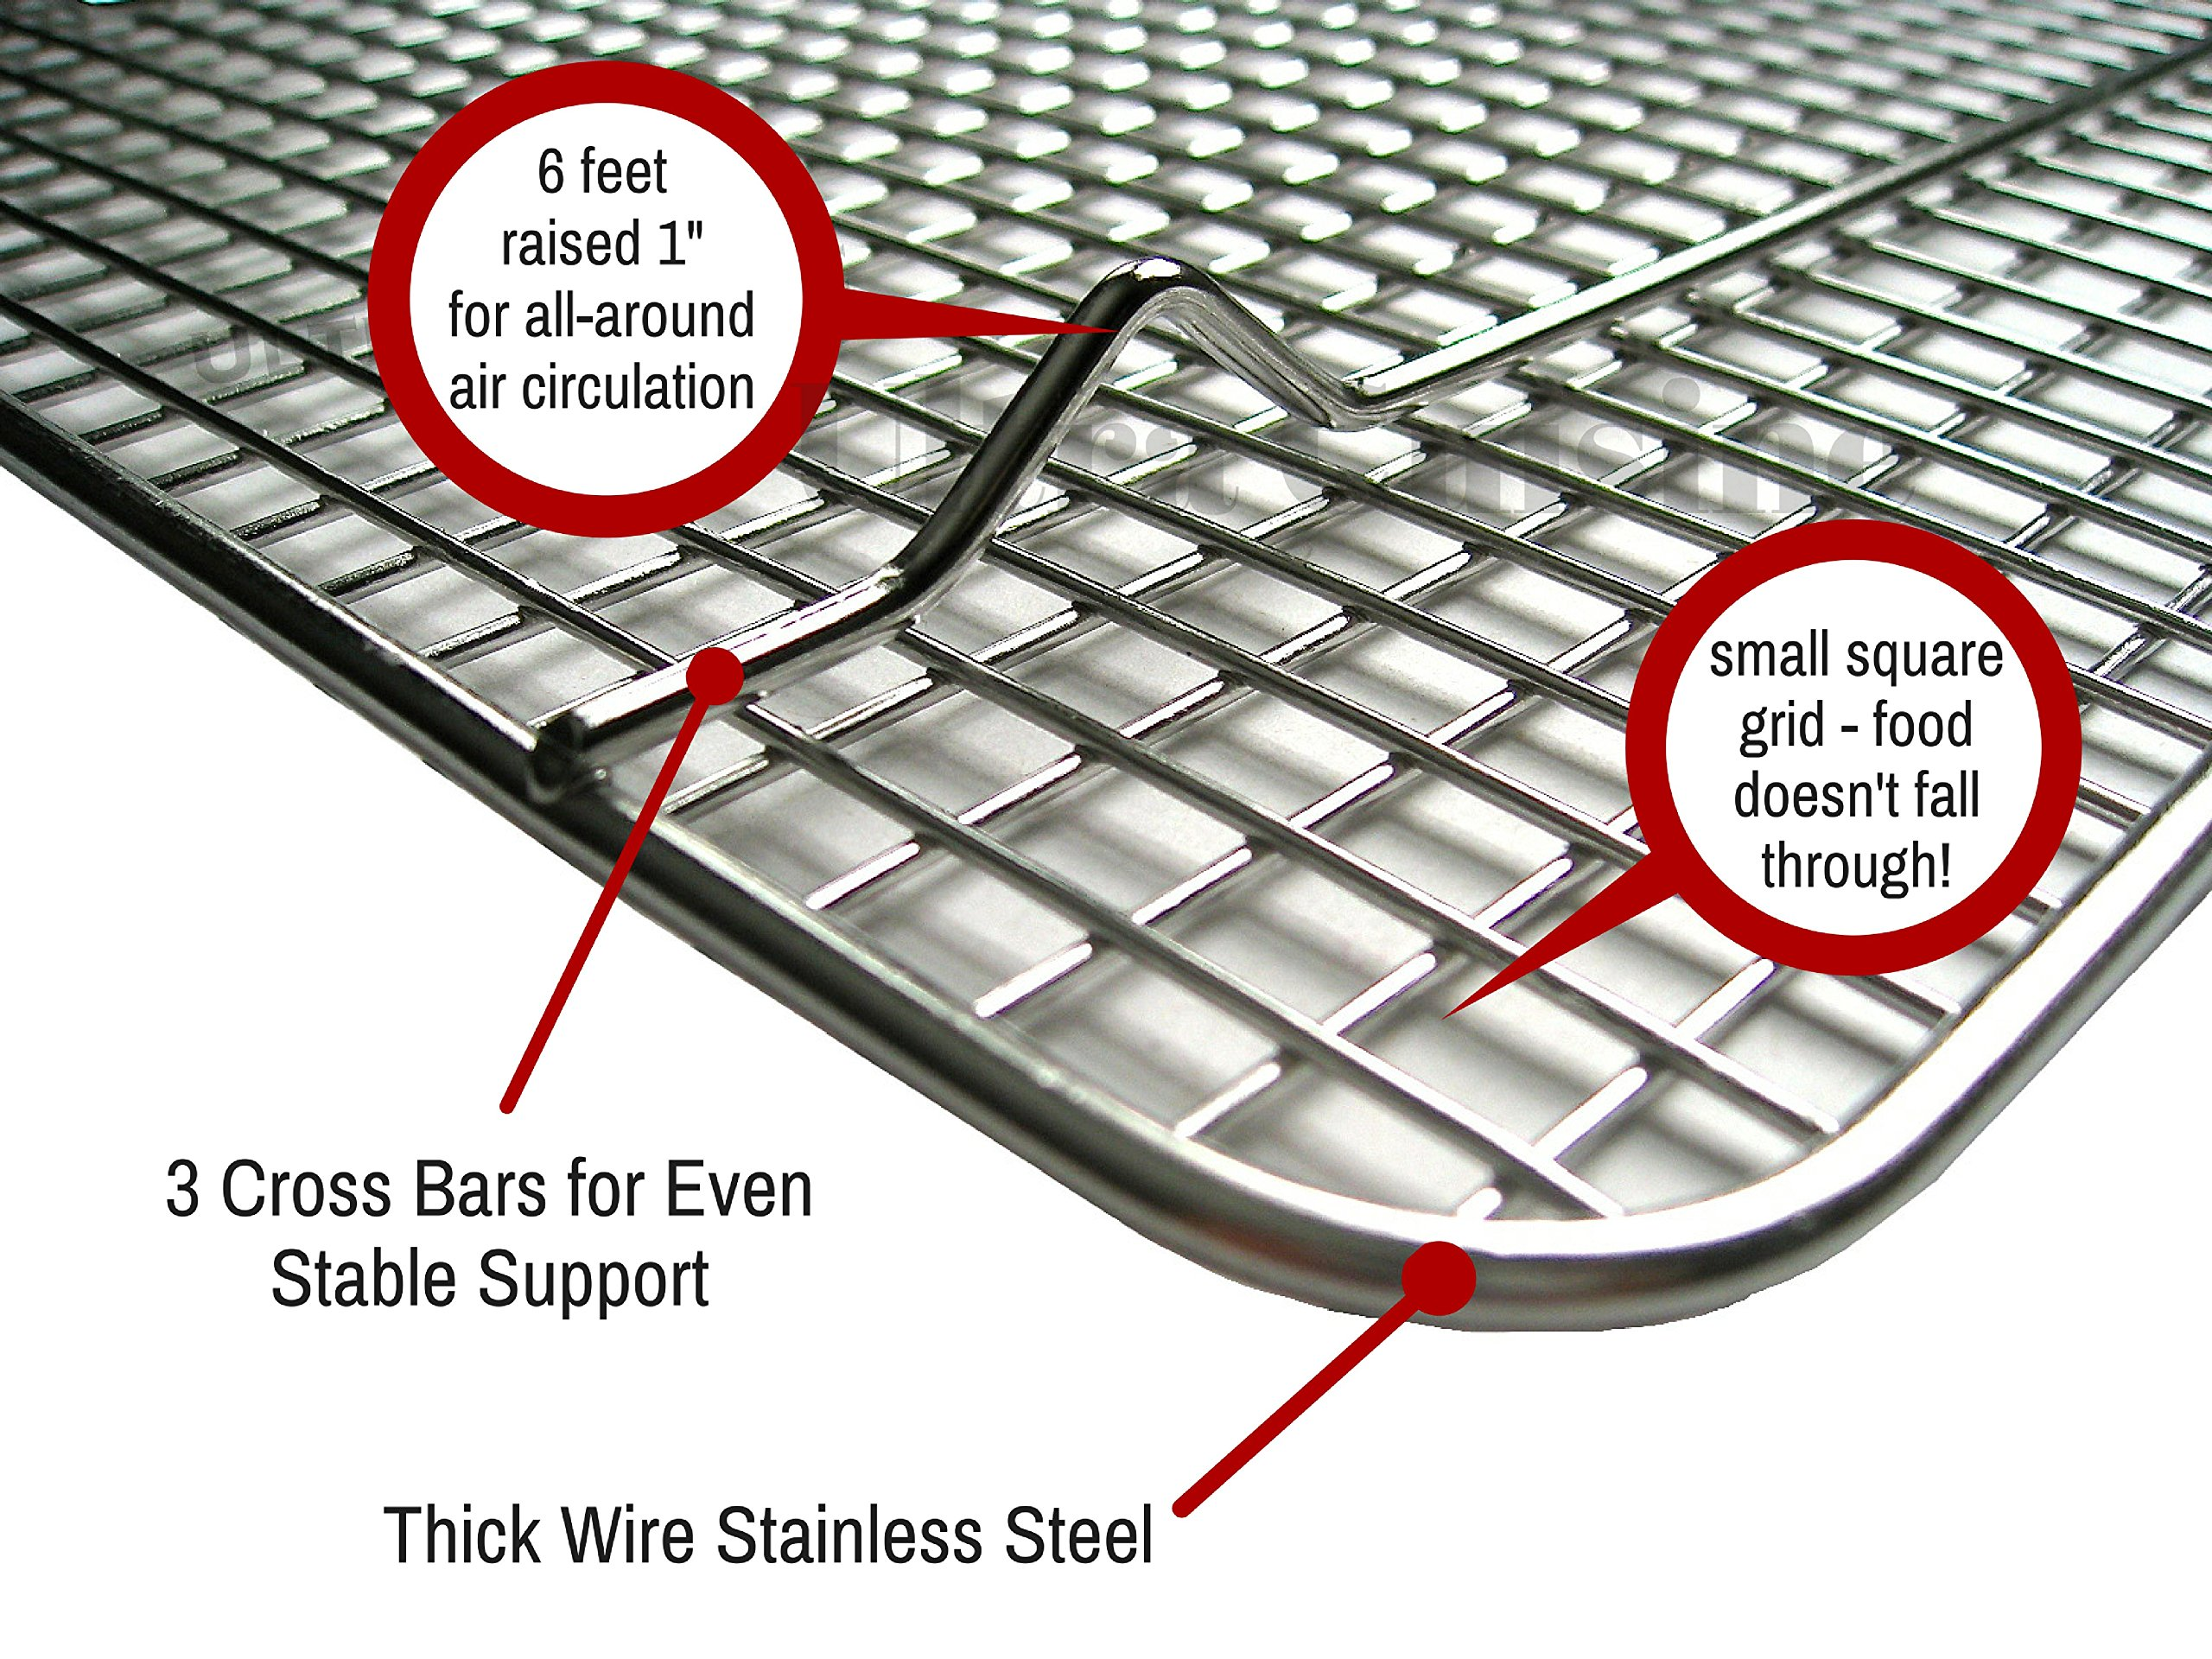 Ultra Cuisine 100% Stainless Steel Wire Cooling Rack for Baking fits Half Sheet Pans  Cool Cookies, Cakes, Breads - Oven Safe for Cooking, Roasting, Grilling - Heavy Duty Commercial Quality by Ultra Cuisine (Image #6)